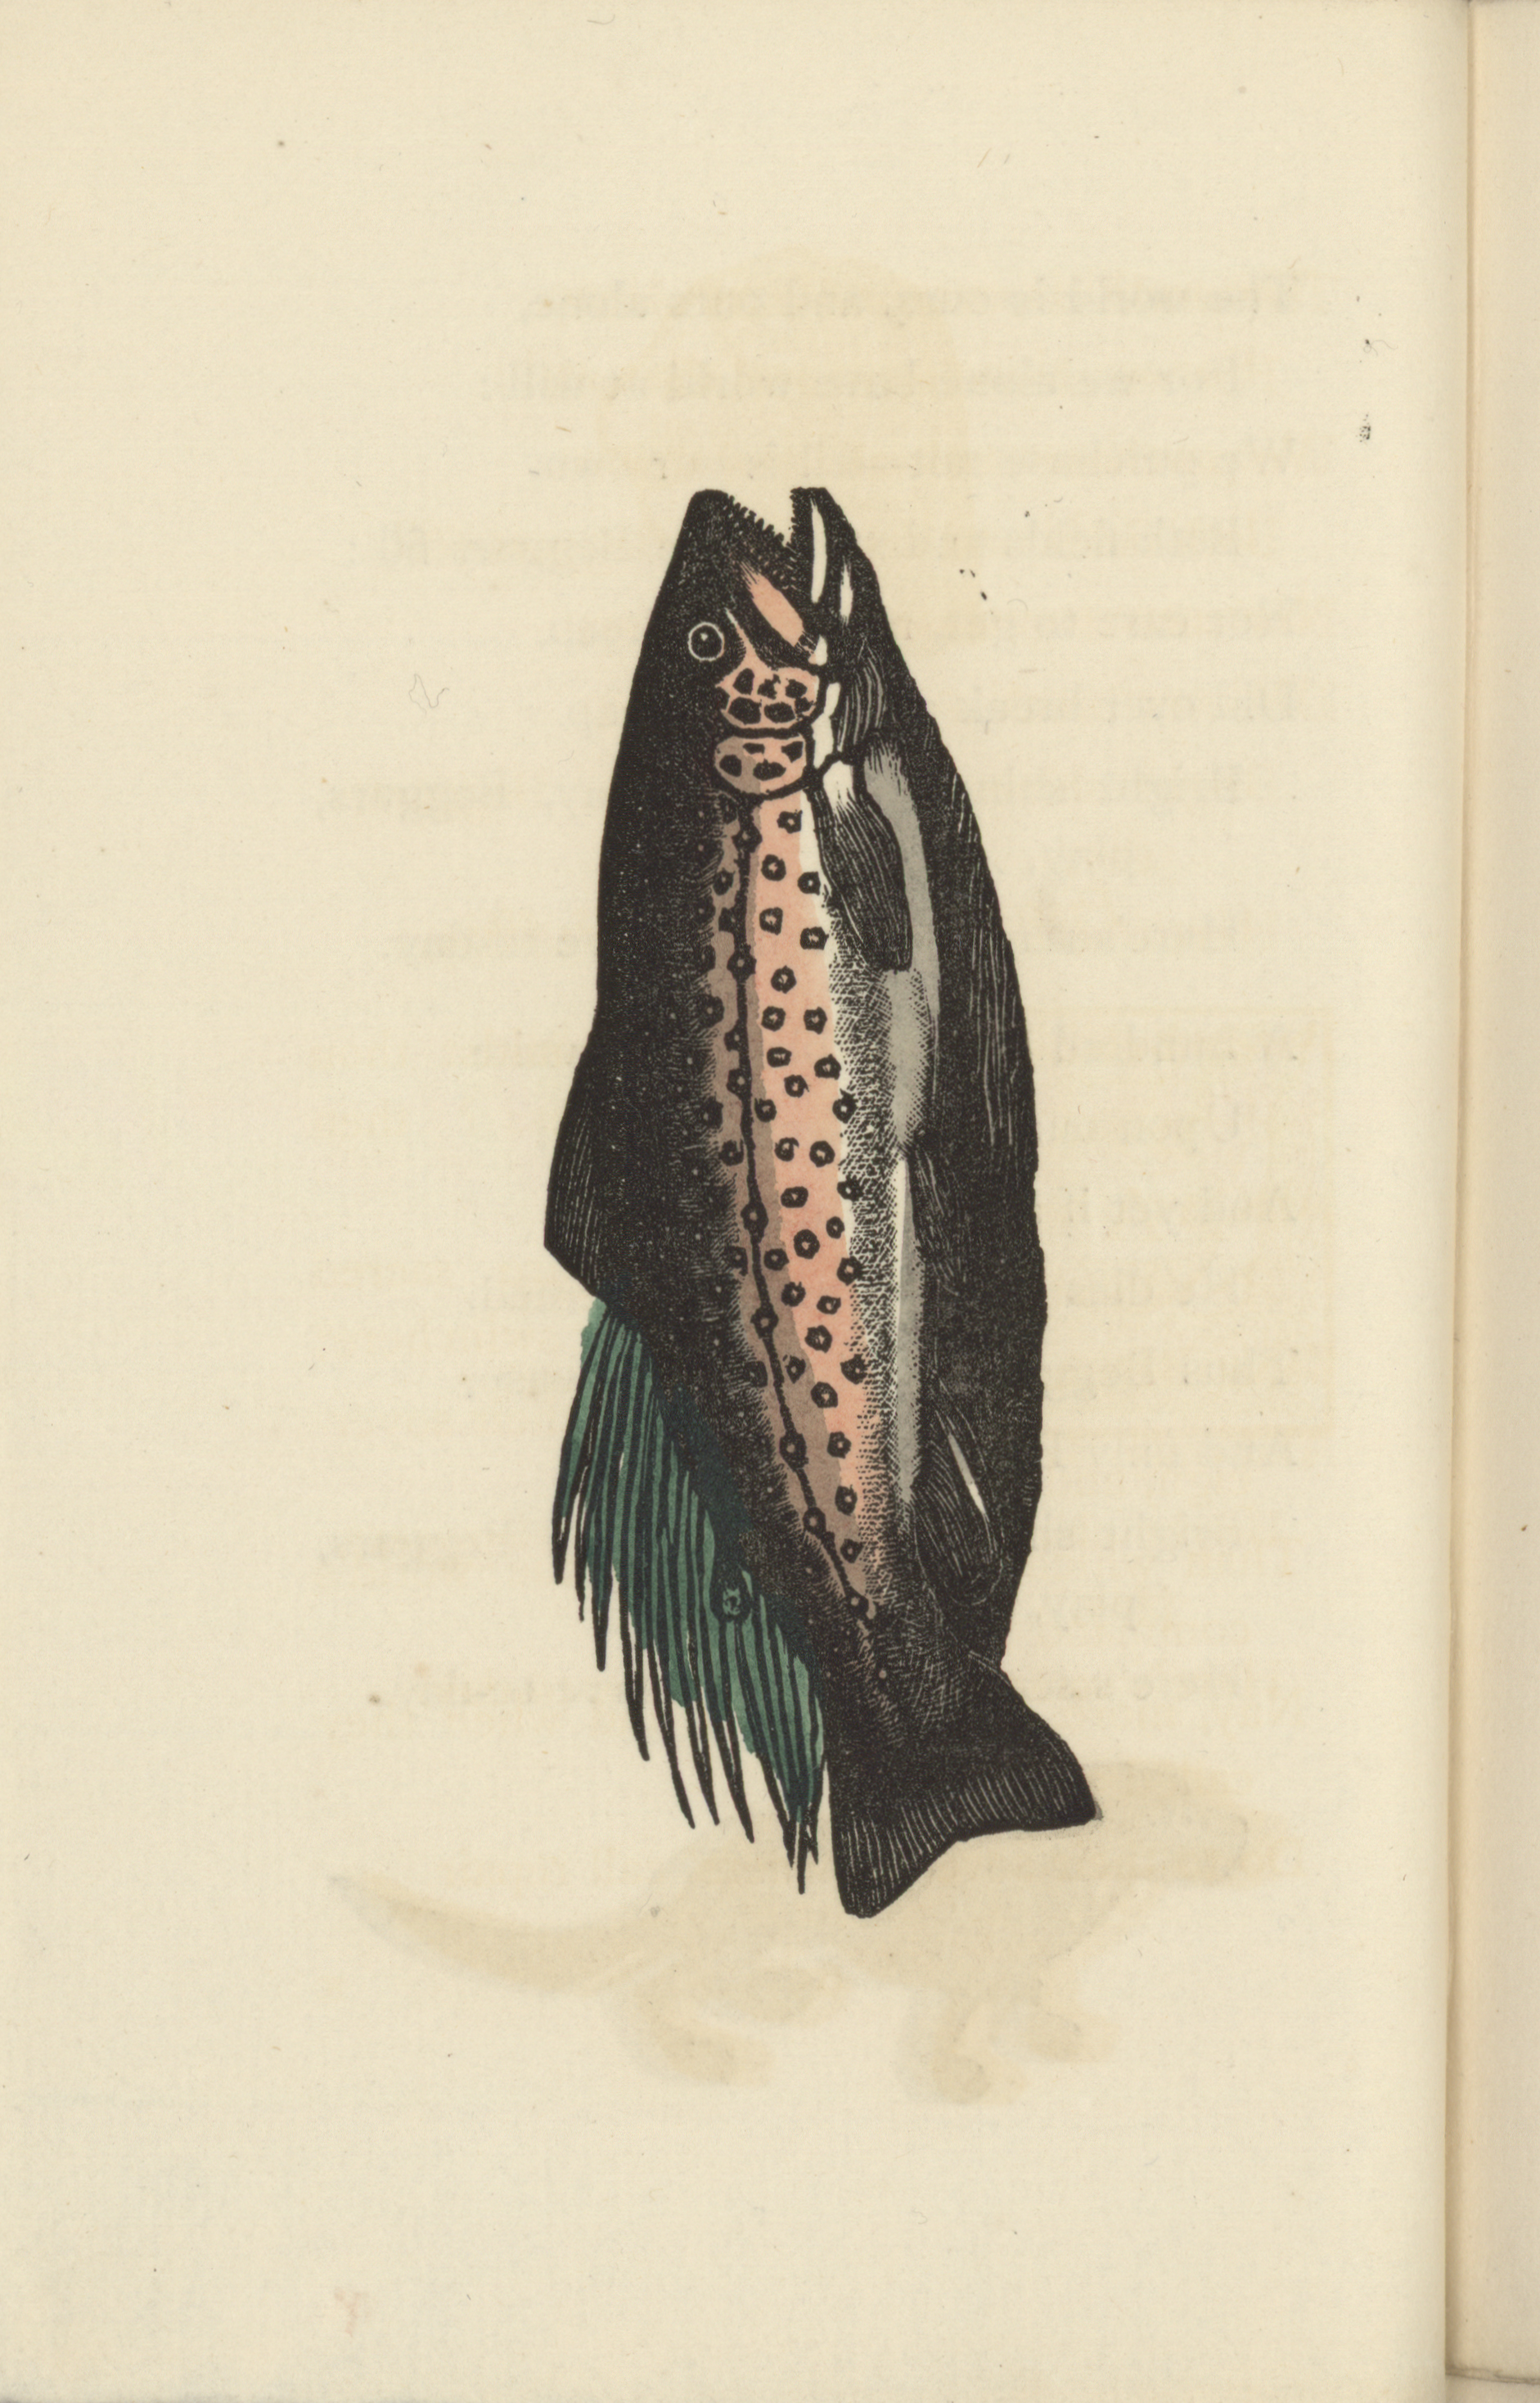 1855 Woodcut of a Fish